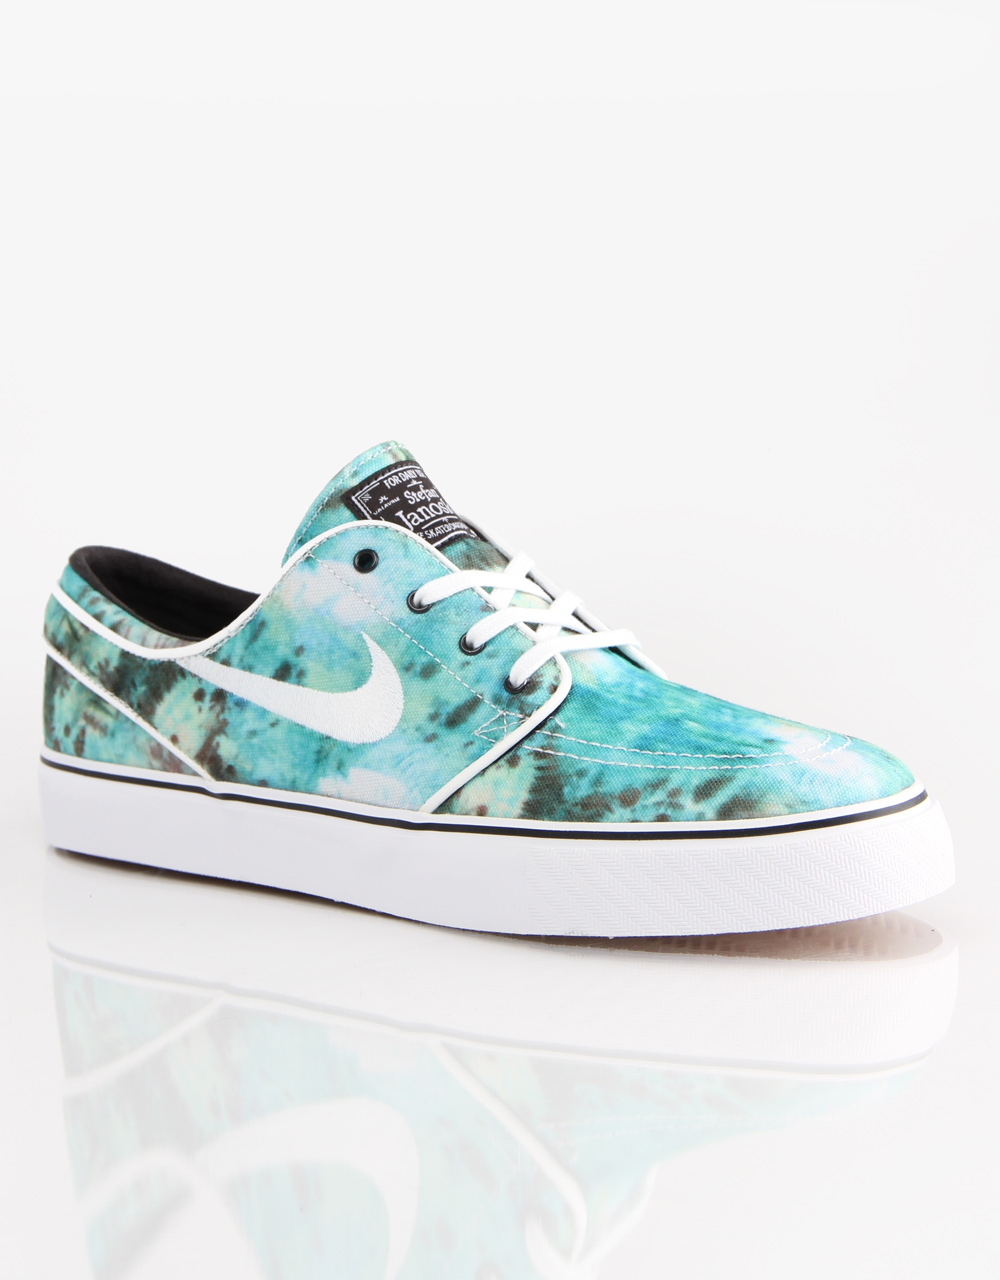 0c43a75a43 Nike SB Zoom Stefan Janoski Skate Shoes - Turbo Green White Bright ...